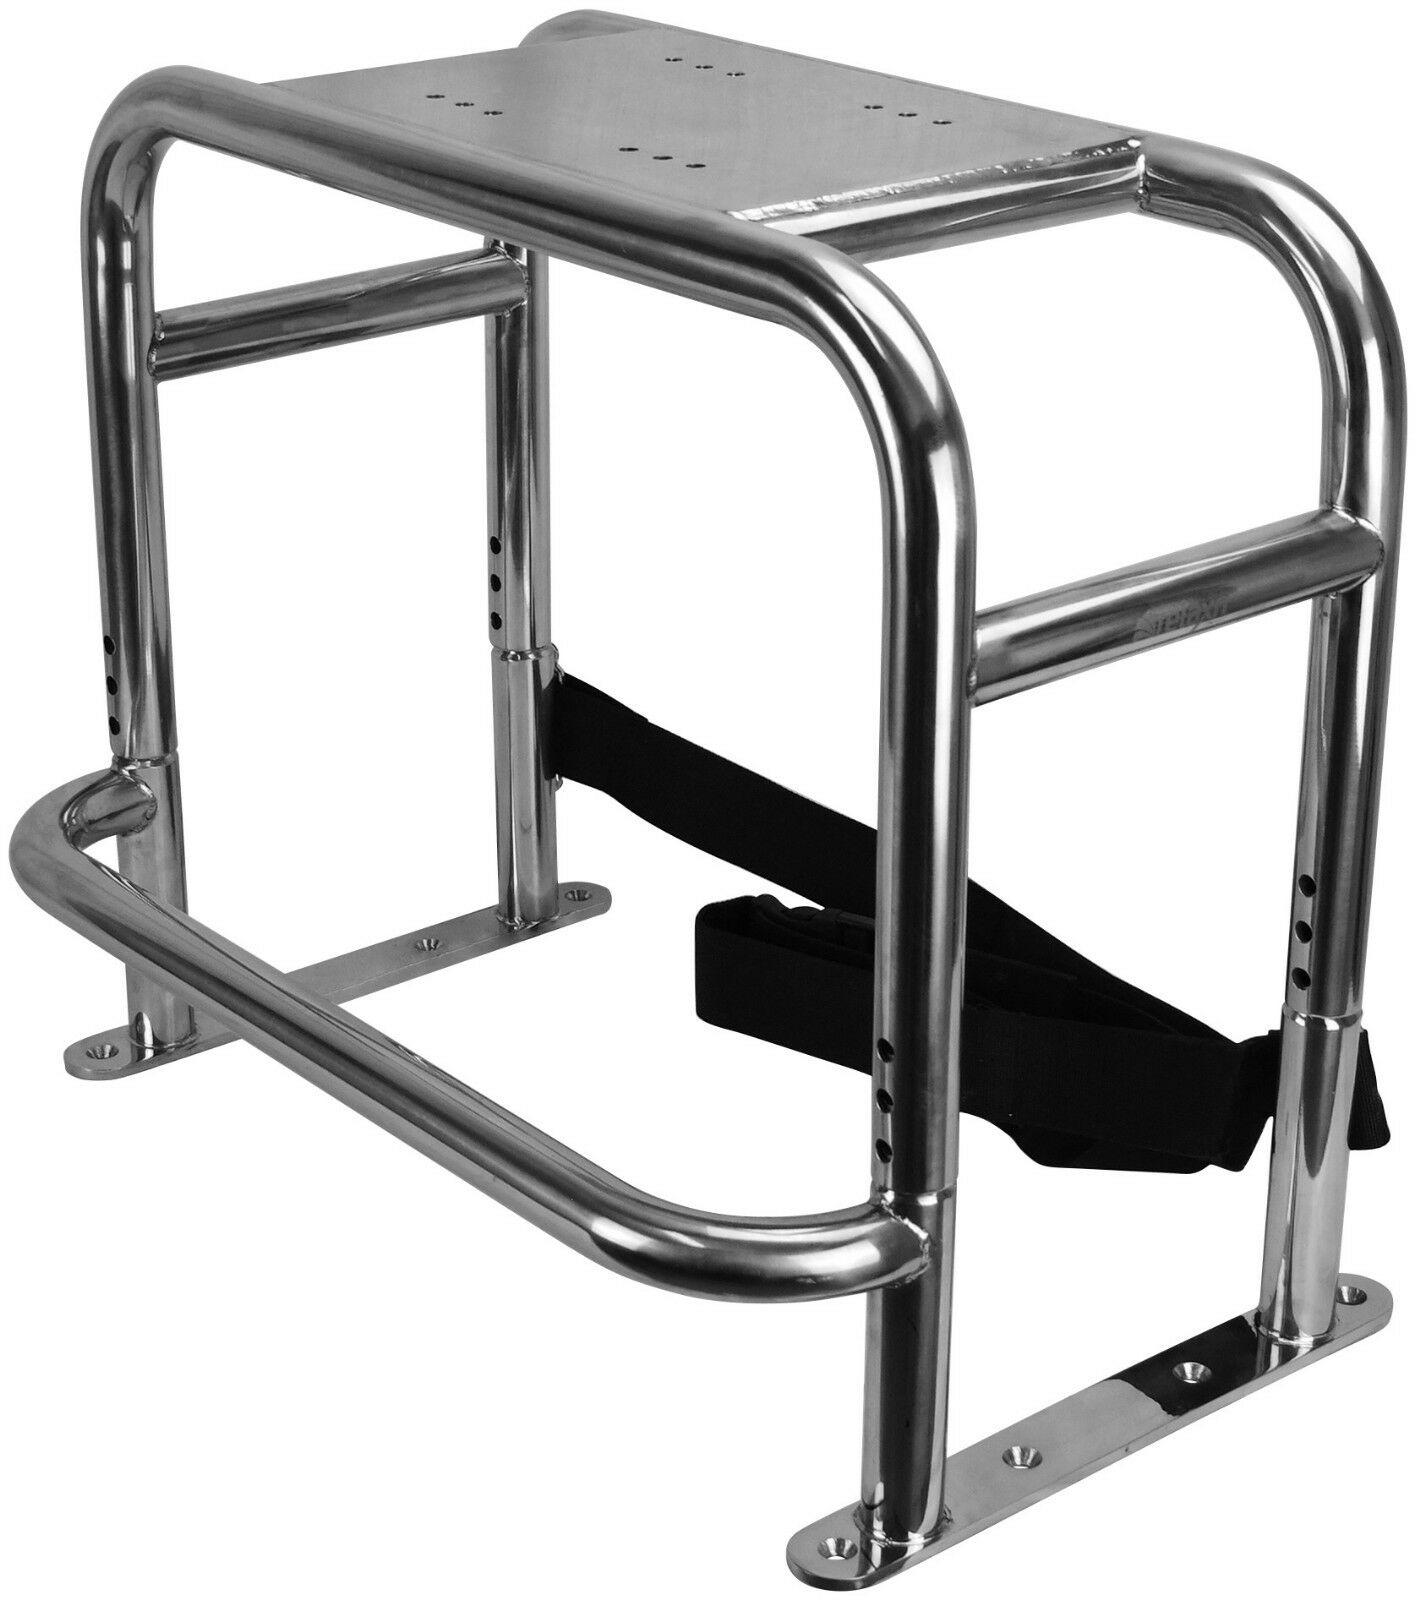 fishing chair base steel for sale philippines boat seat pedestal marine